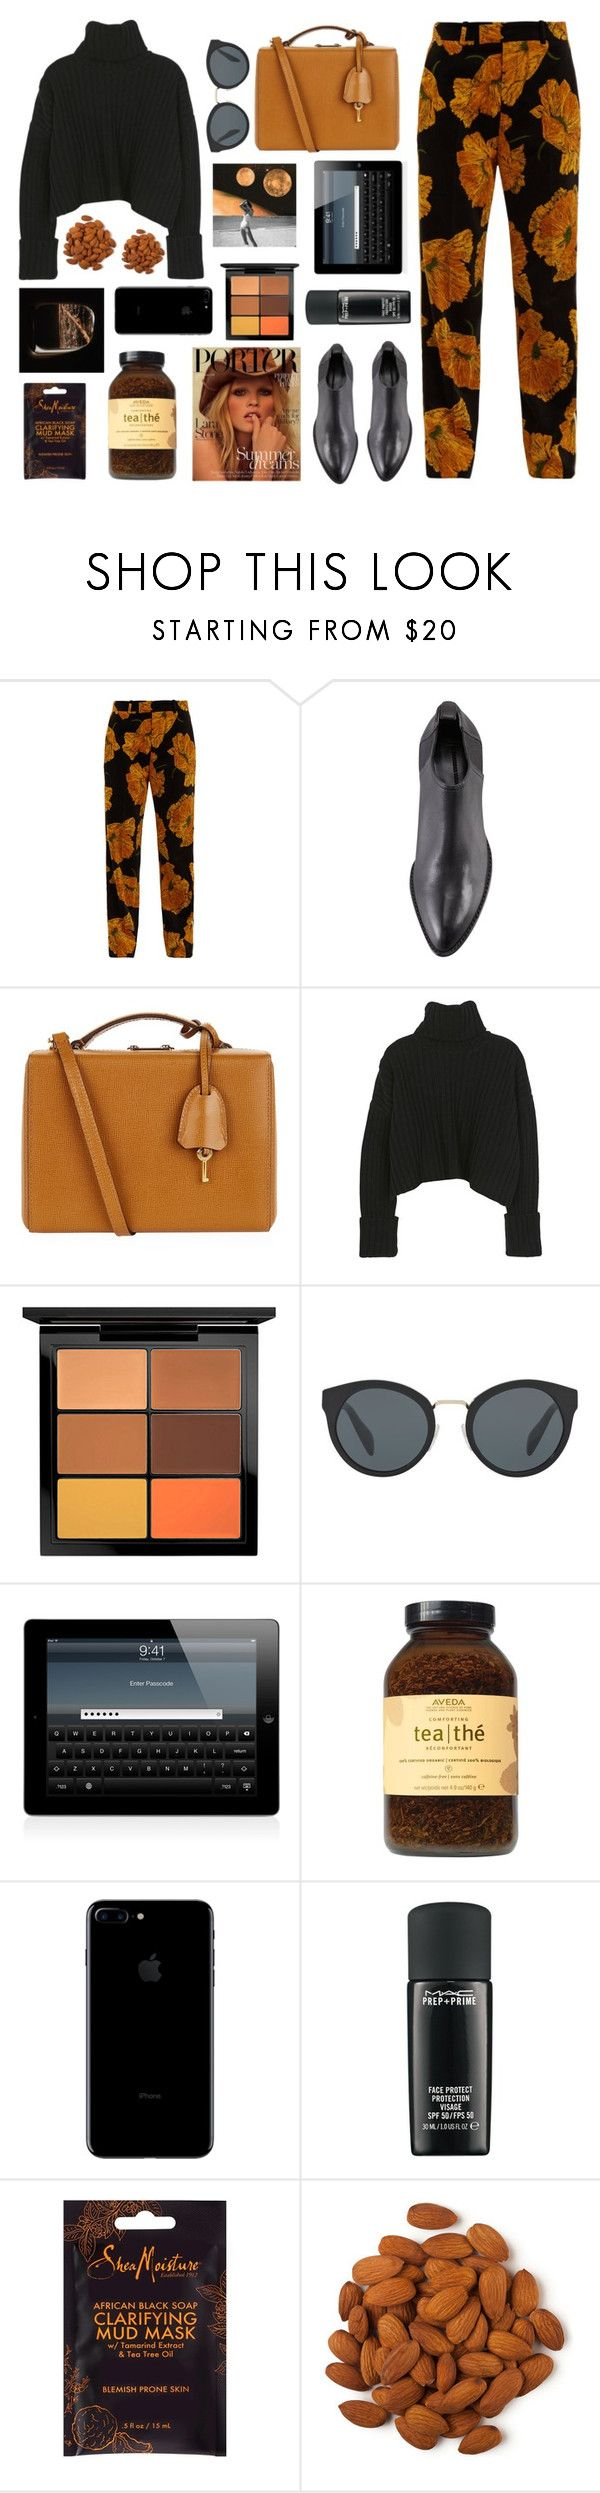 """""""Pompeii- Bastille"""" by tacoxcat ❤ liked on Polyvore featuring Gucci, Alexander Wang, Mark Cross, MAC Cosmetics, Prada and Aveda"""